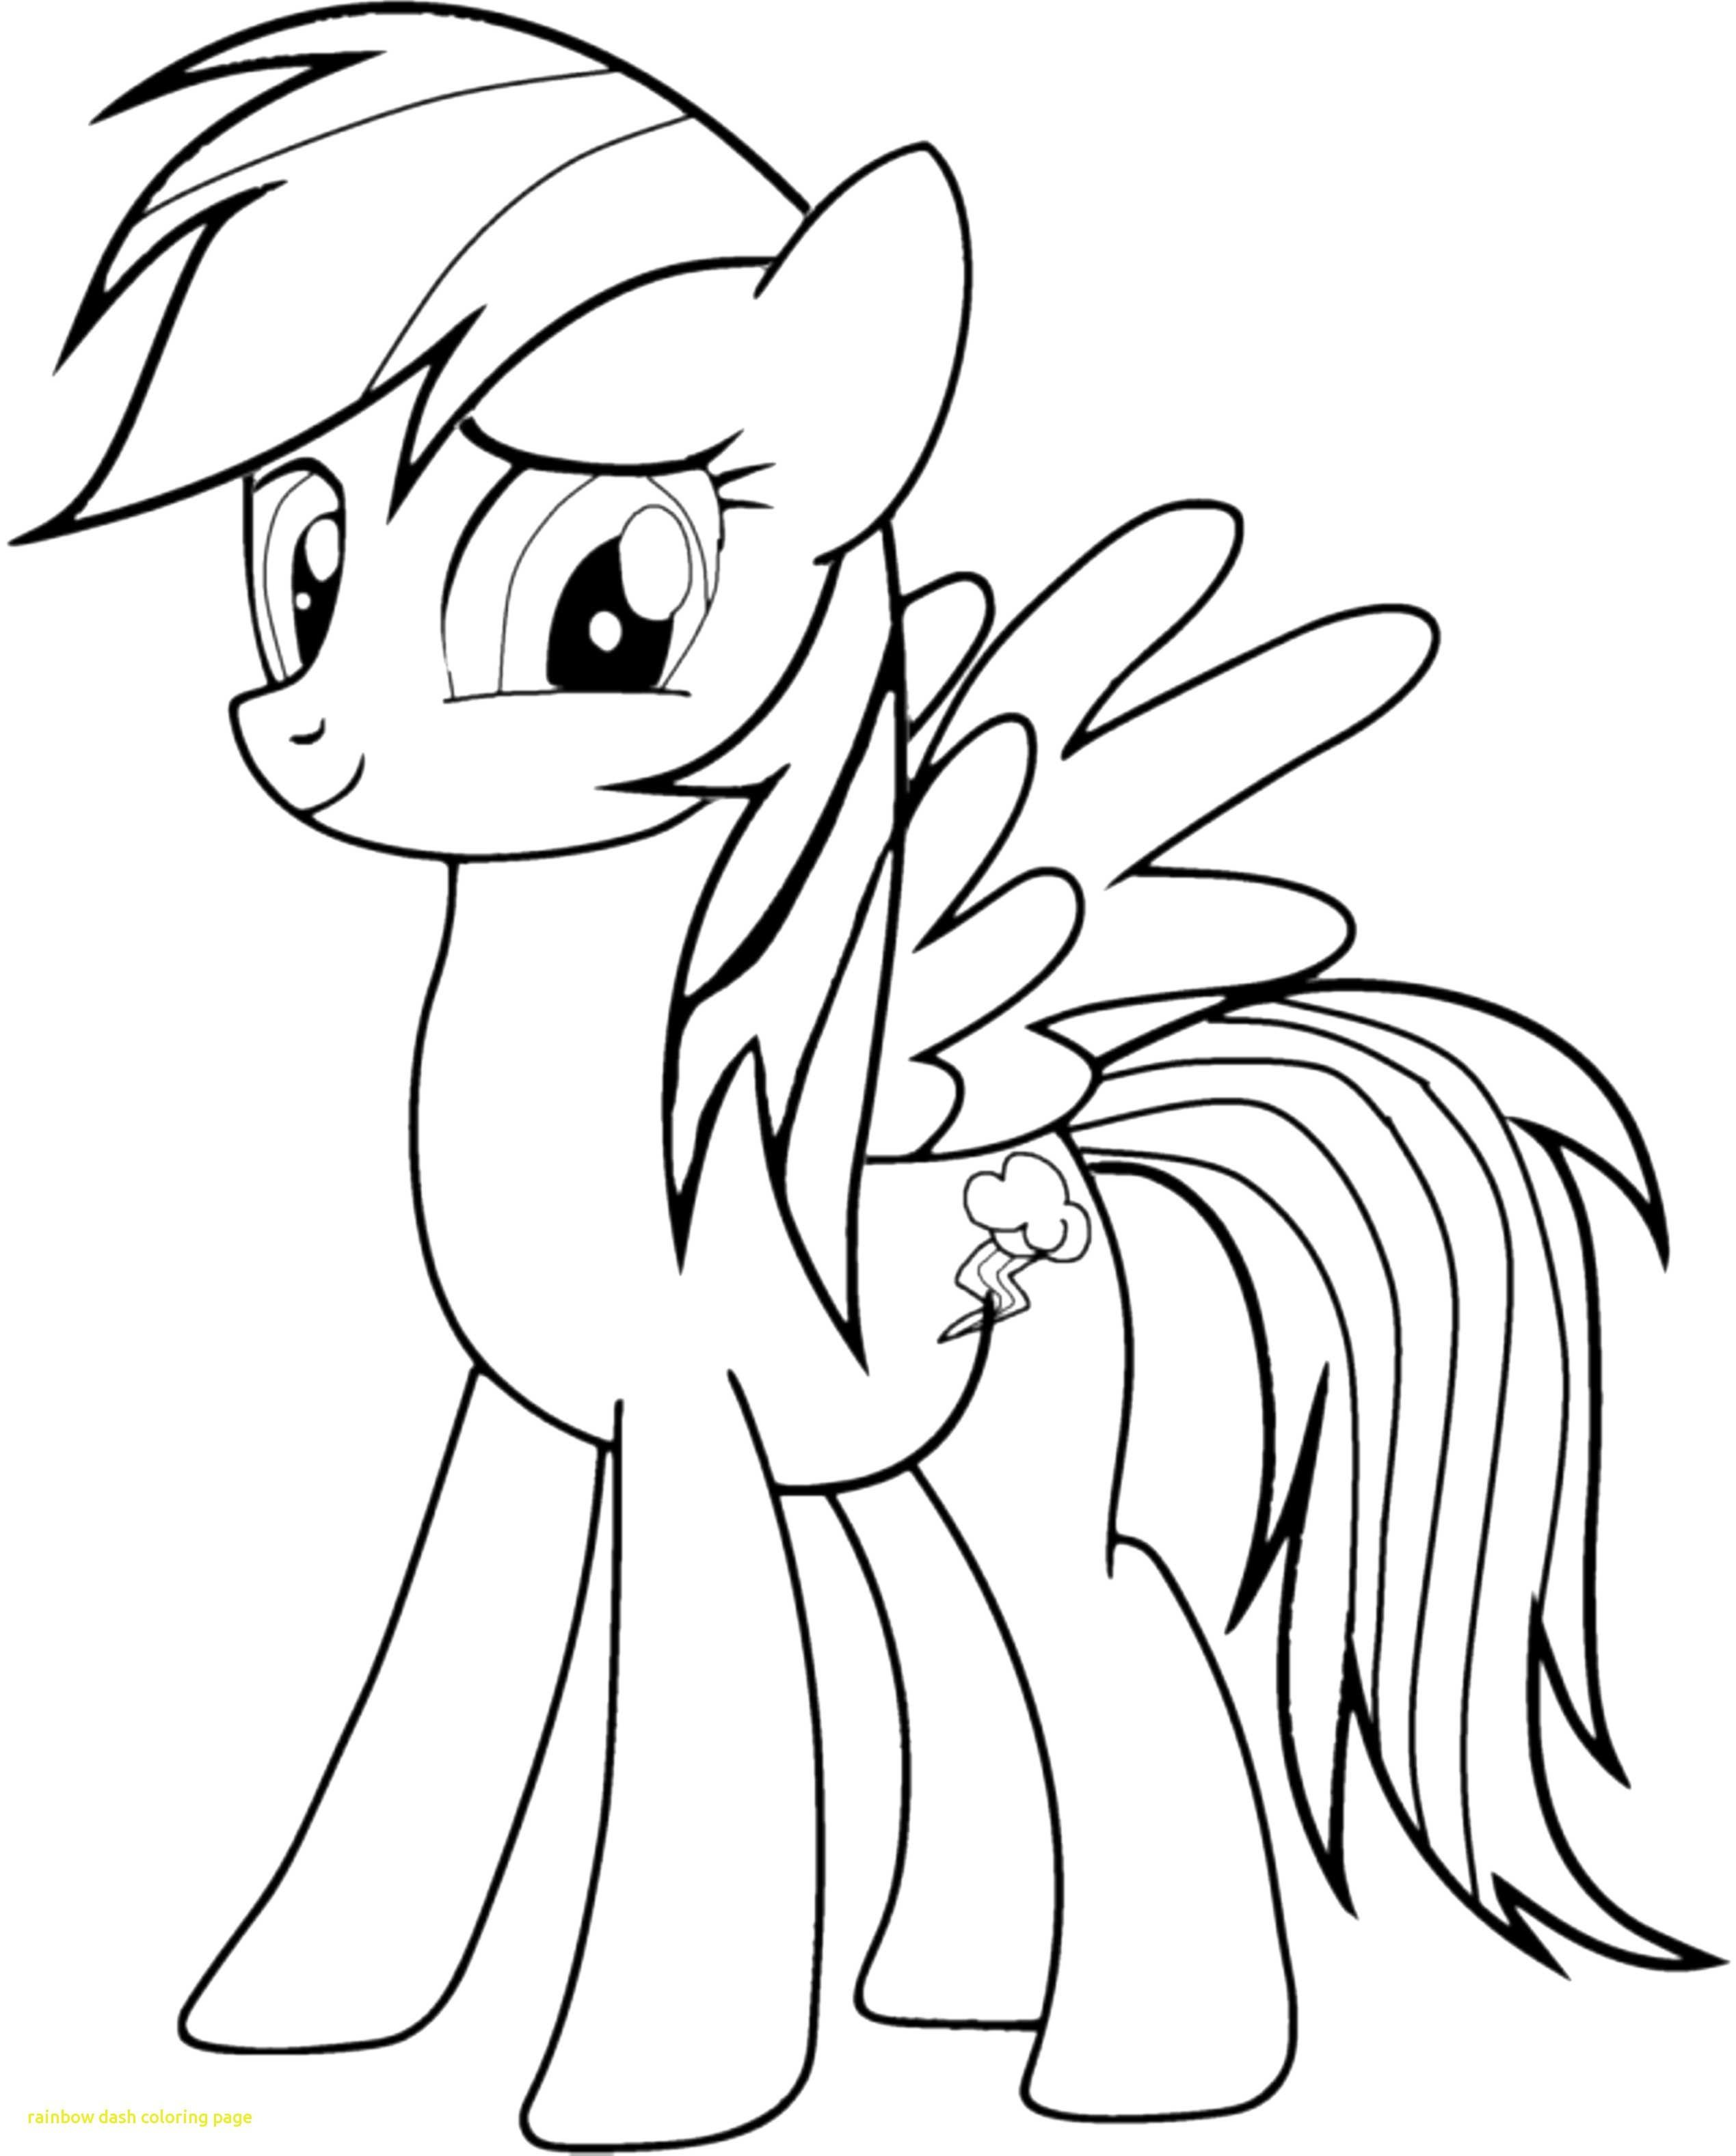 My Little Pony Rainbow Dash Coloring Pages From The Thousands Of Images On The Web Co My Little Pony Coloring My Little Pony Printable Unicorn Coloring Pages